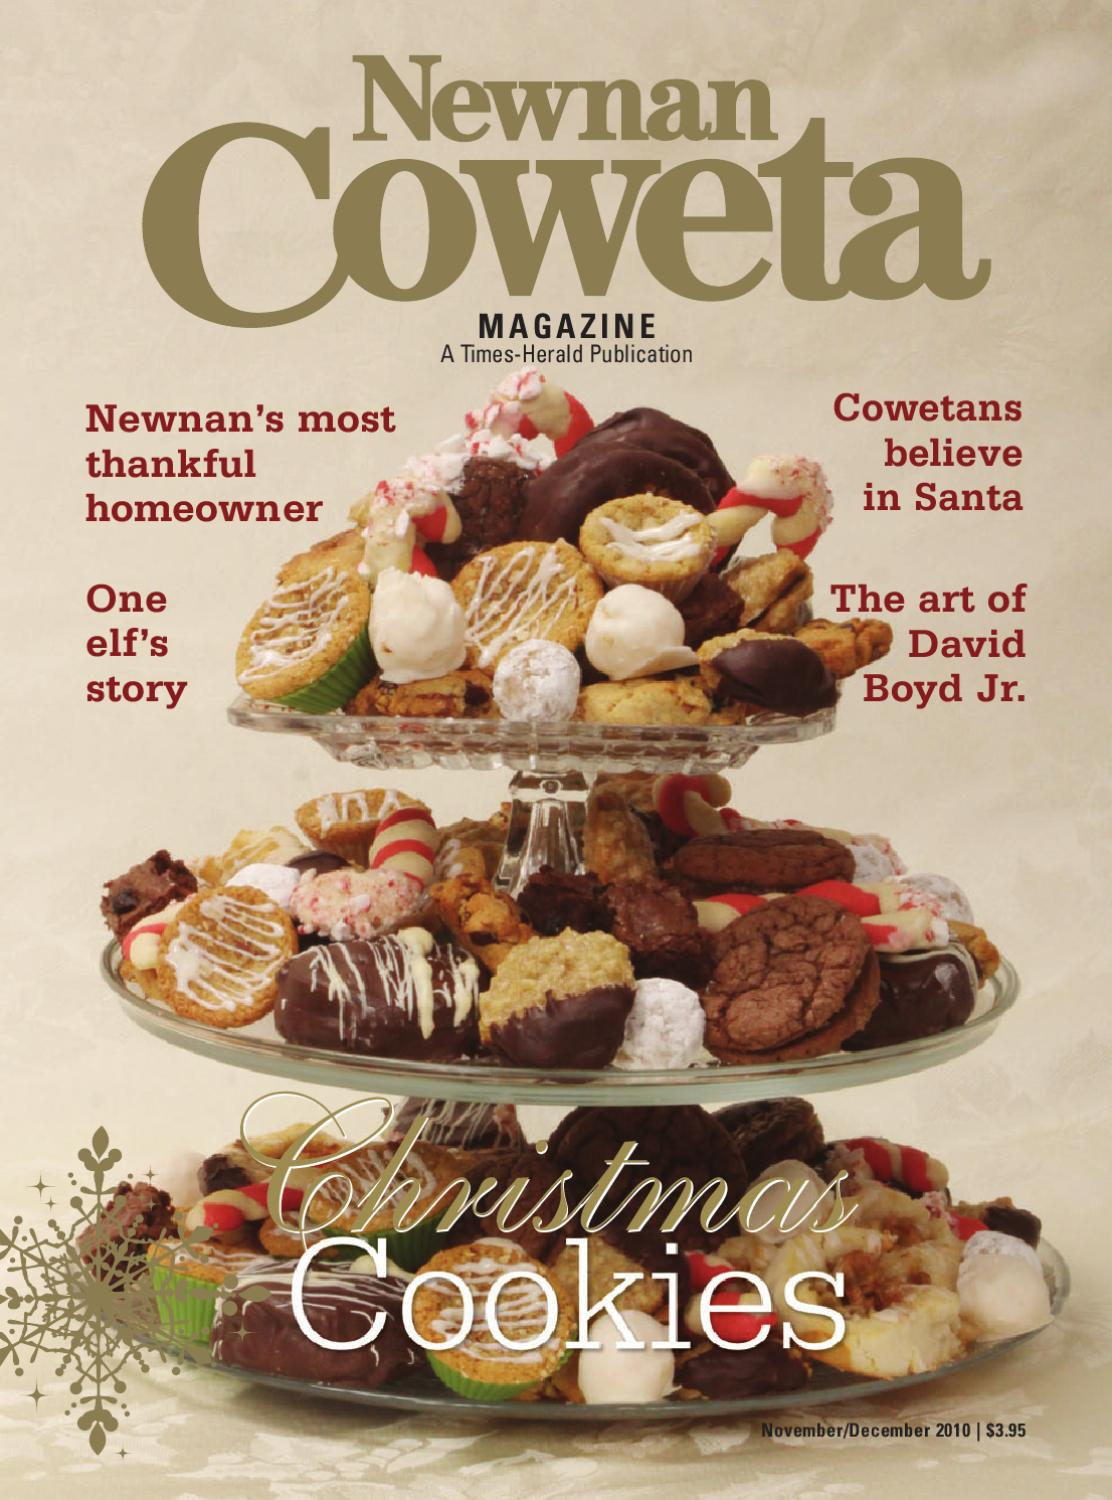 Newnan coweta magazine novemberdecember 2010 by deberah williams newnan coweta magazine novemberdecember 2010 by deberah williams issuu kristyandbryce Image collections